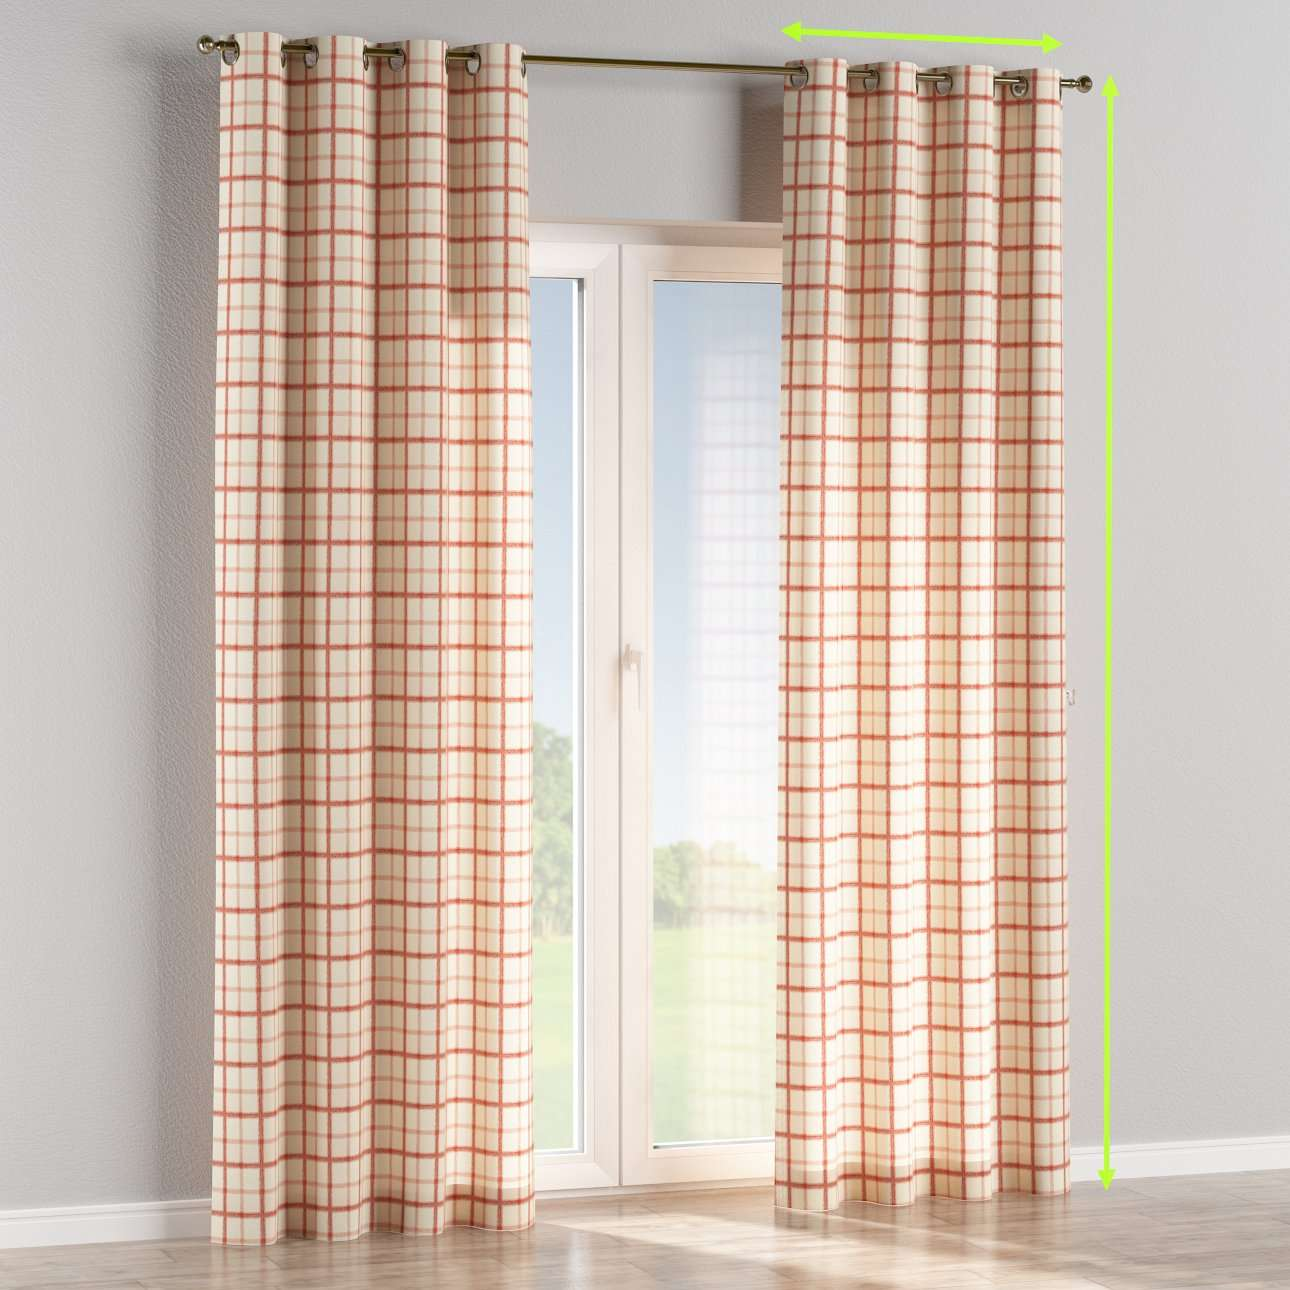 Eyelet curtain in collection Avinon, fabric: 131-15